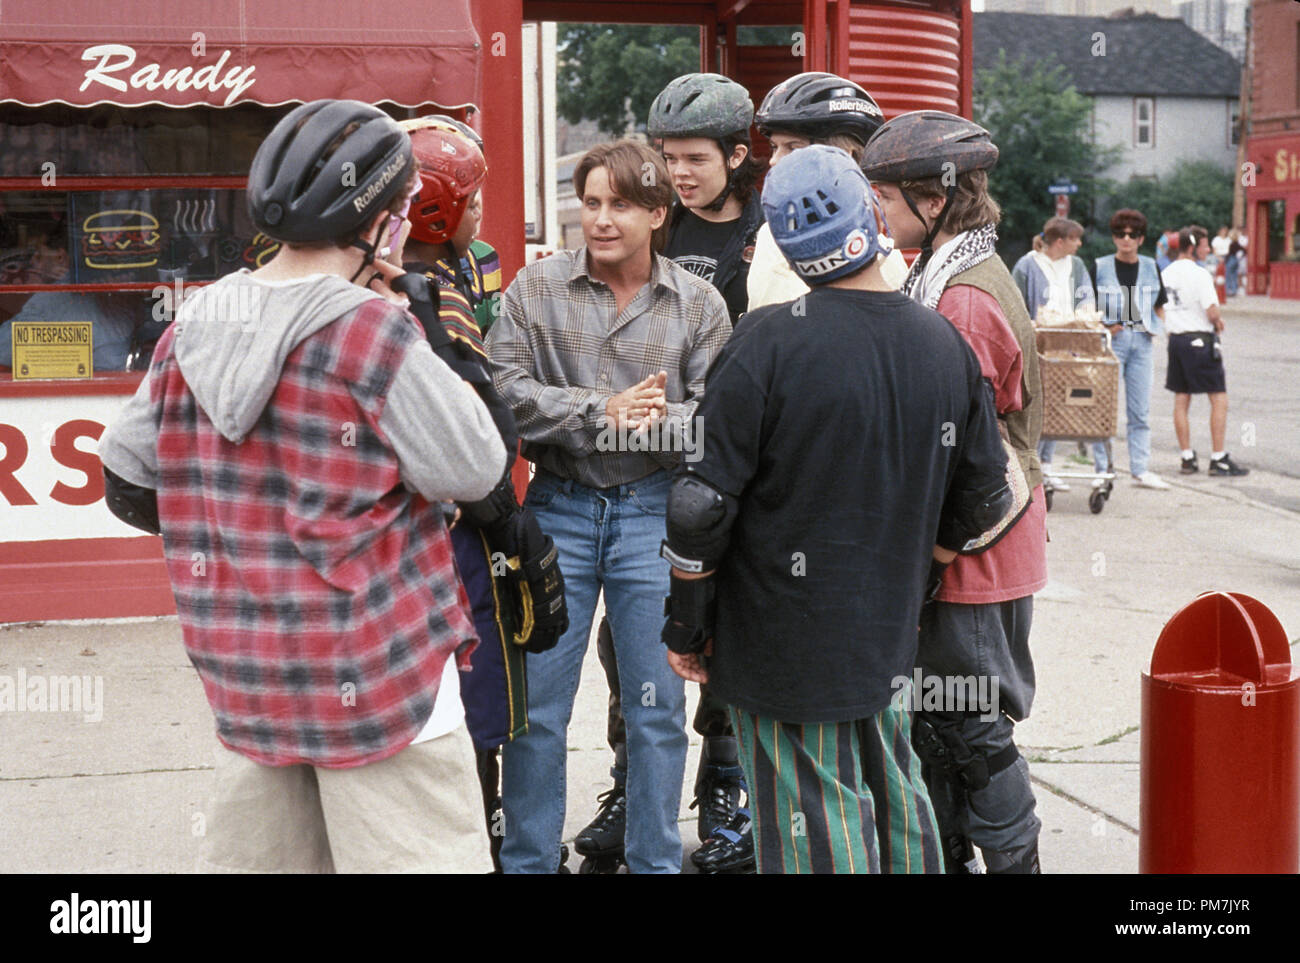 Film Still from 'D2: The Mighty Ducks' Emilio Estevez, Matt Doherty, Brandon Quintin Adams, Garette Ratliff Henson, Vincent Larusso, Shaun Weiss, Elden Henson © 1994 Walt Disney Pictures Photo Credit: Dean Williams   File Reference # 31129374THA  For Editorial Use Only - All Rights Reserved - Stock Image